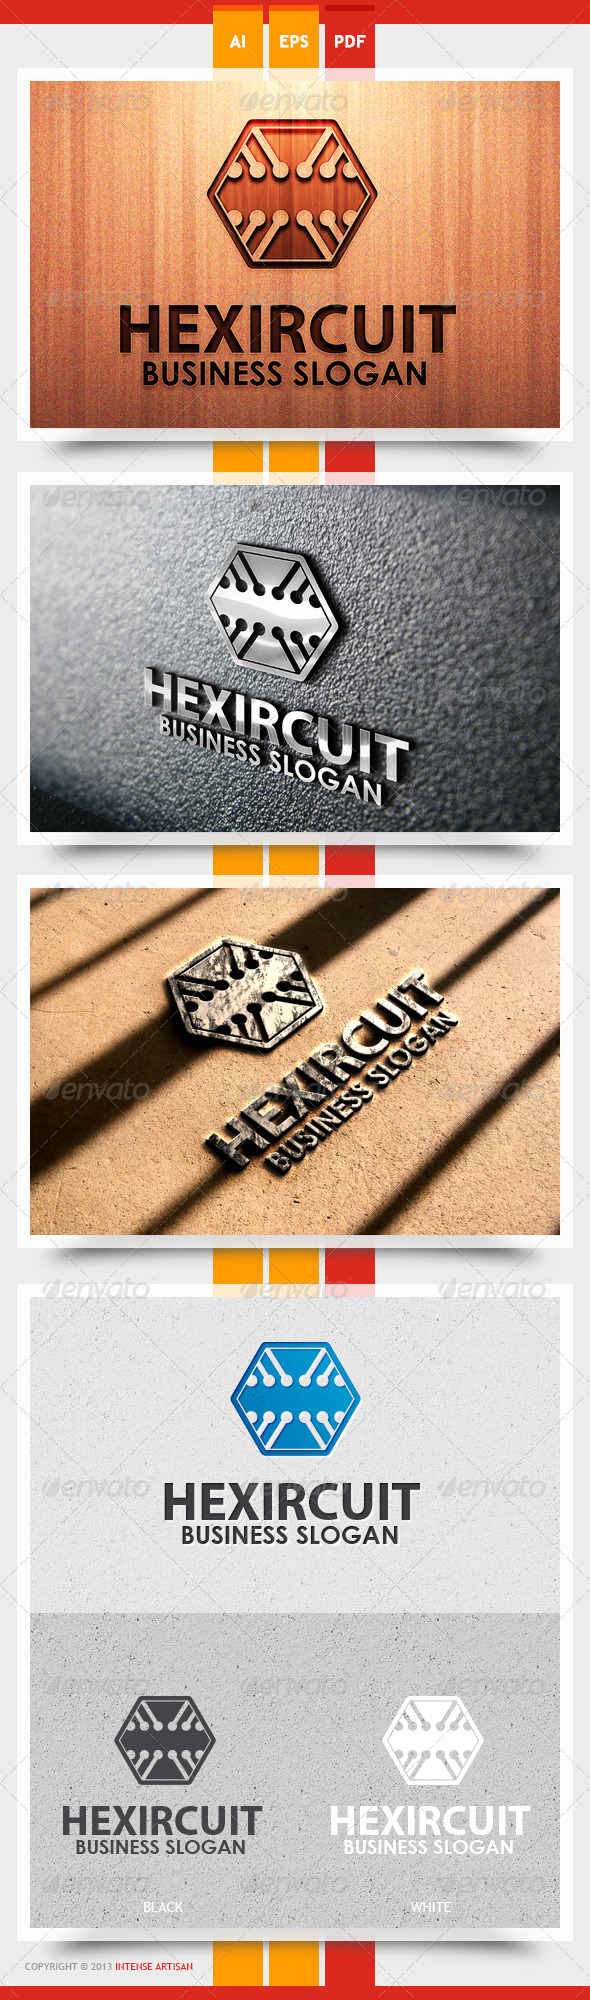 Hexircuit Logo Template - Objects Logo Templates